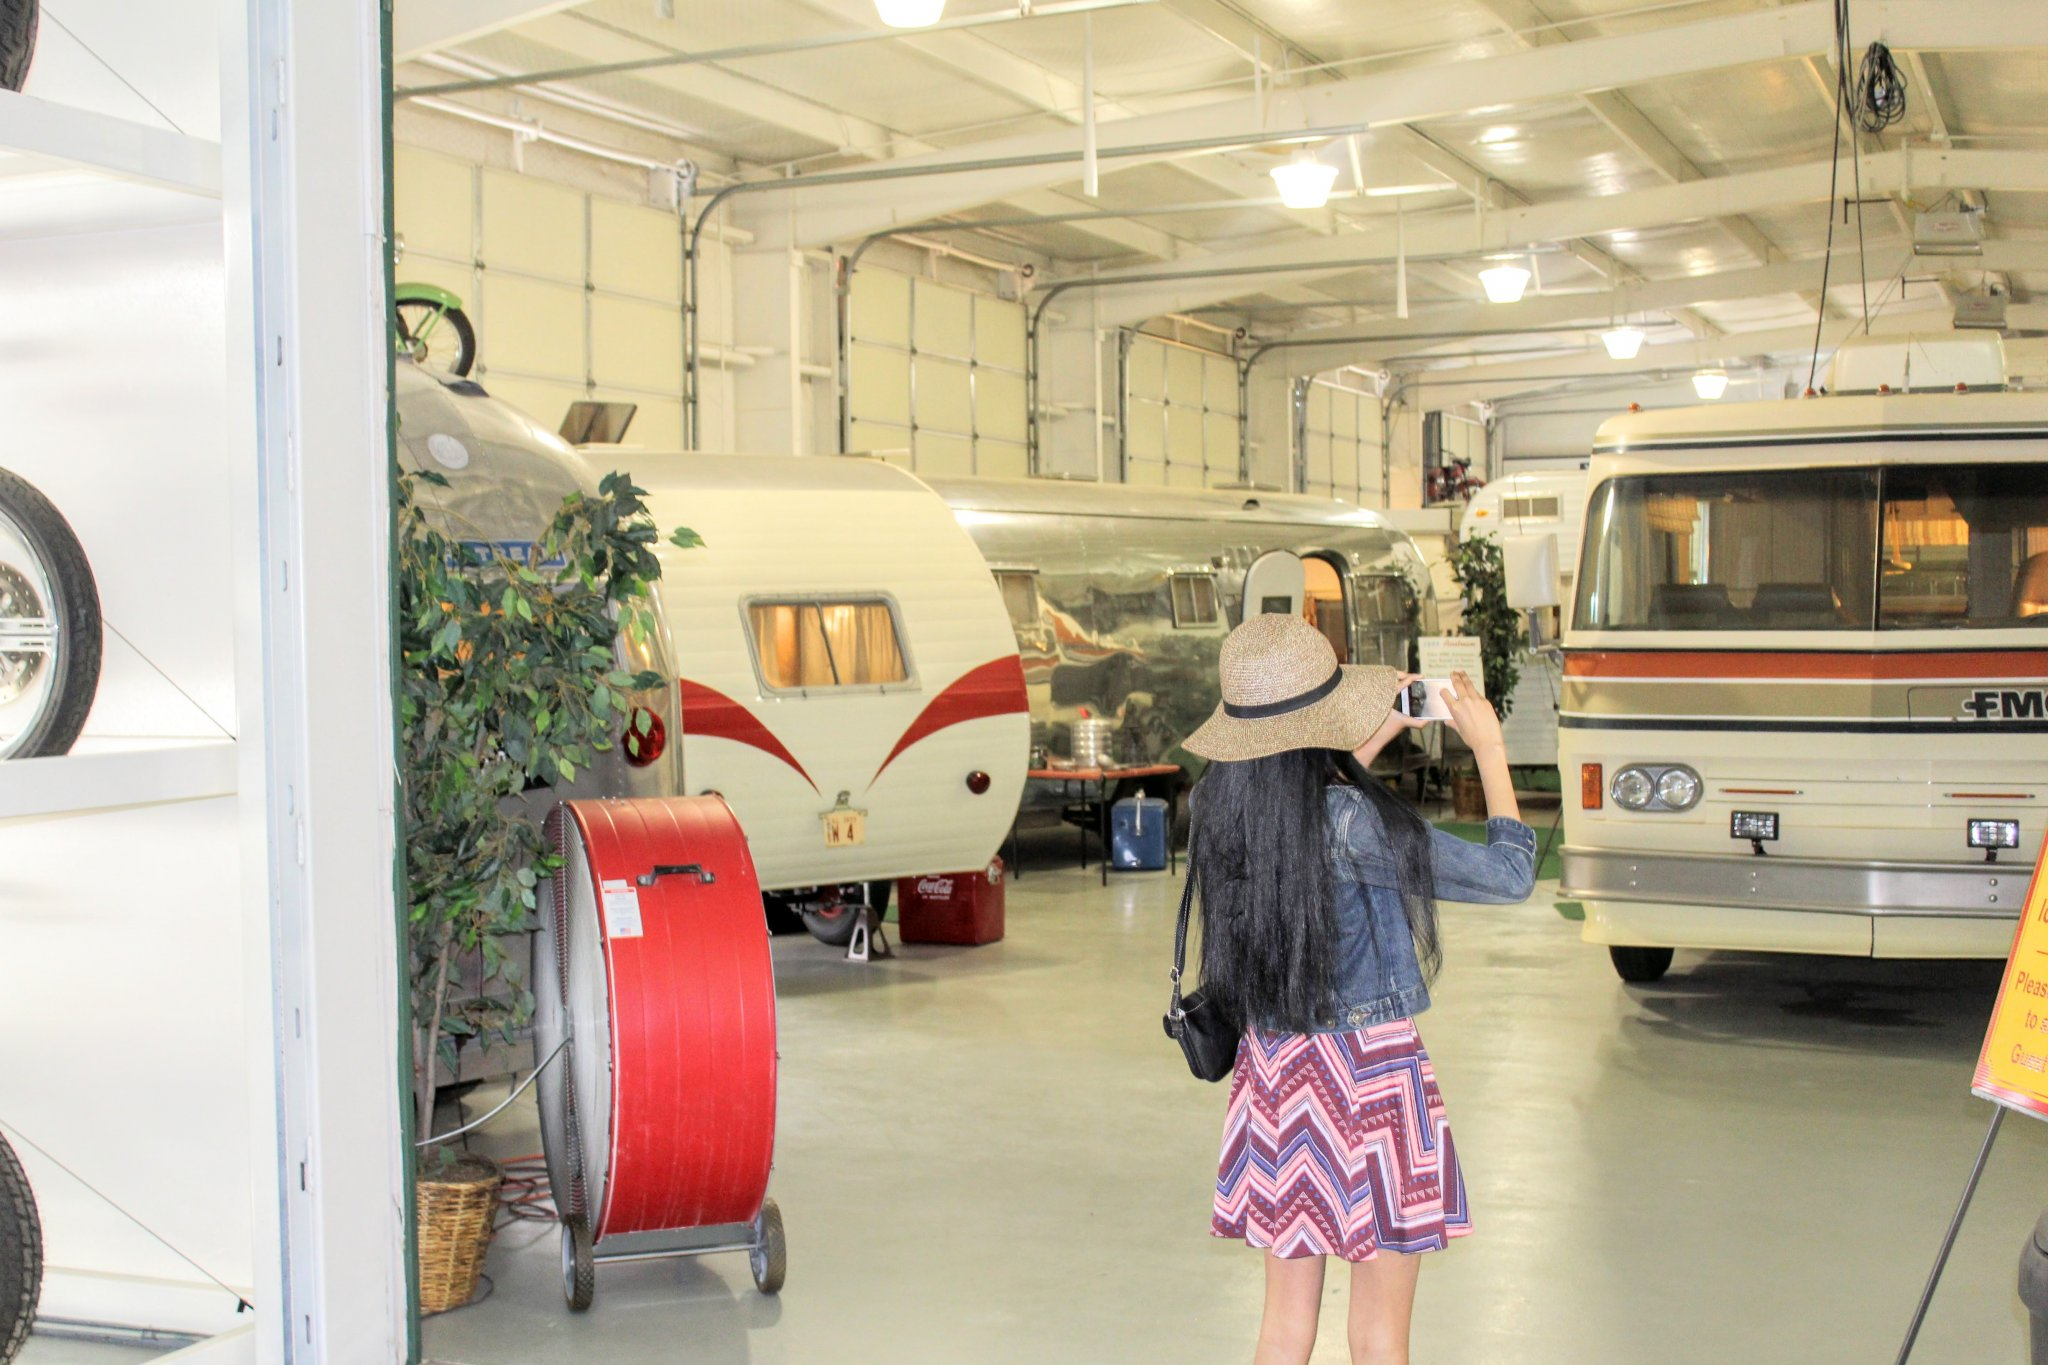 Offbeat Things to Do in Amarillo: RV Museum Entrance